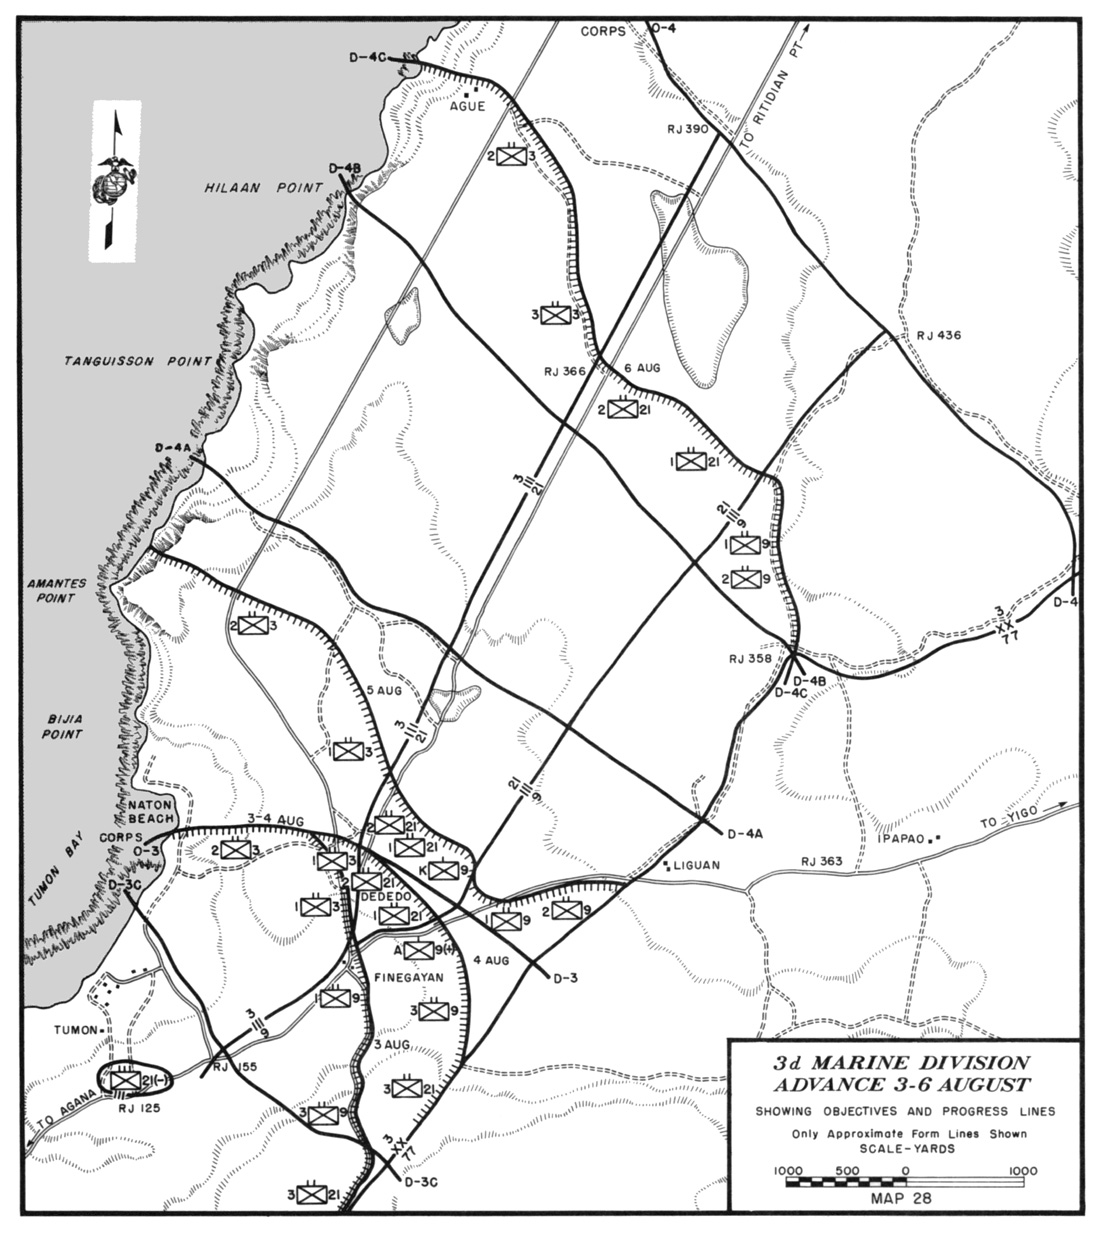 It followed the trail to the road that led to rj 358 where a 300 yard gap existed between the flanking marine and army battalions' defense perimeters